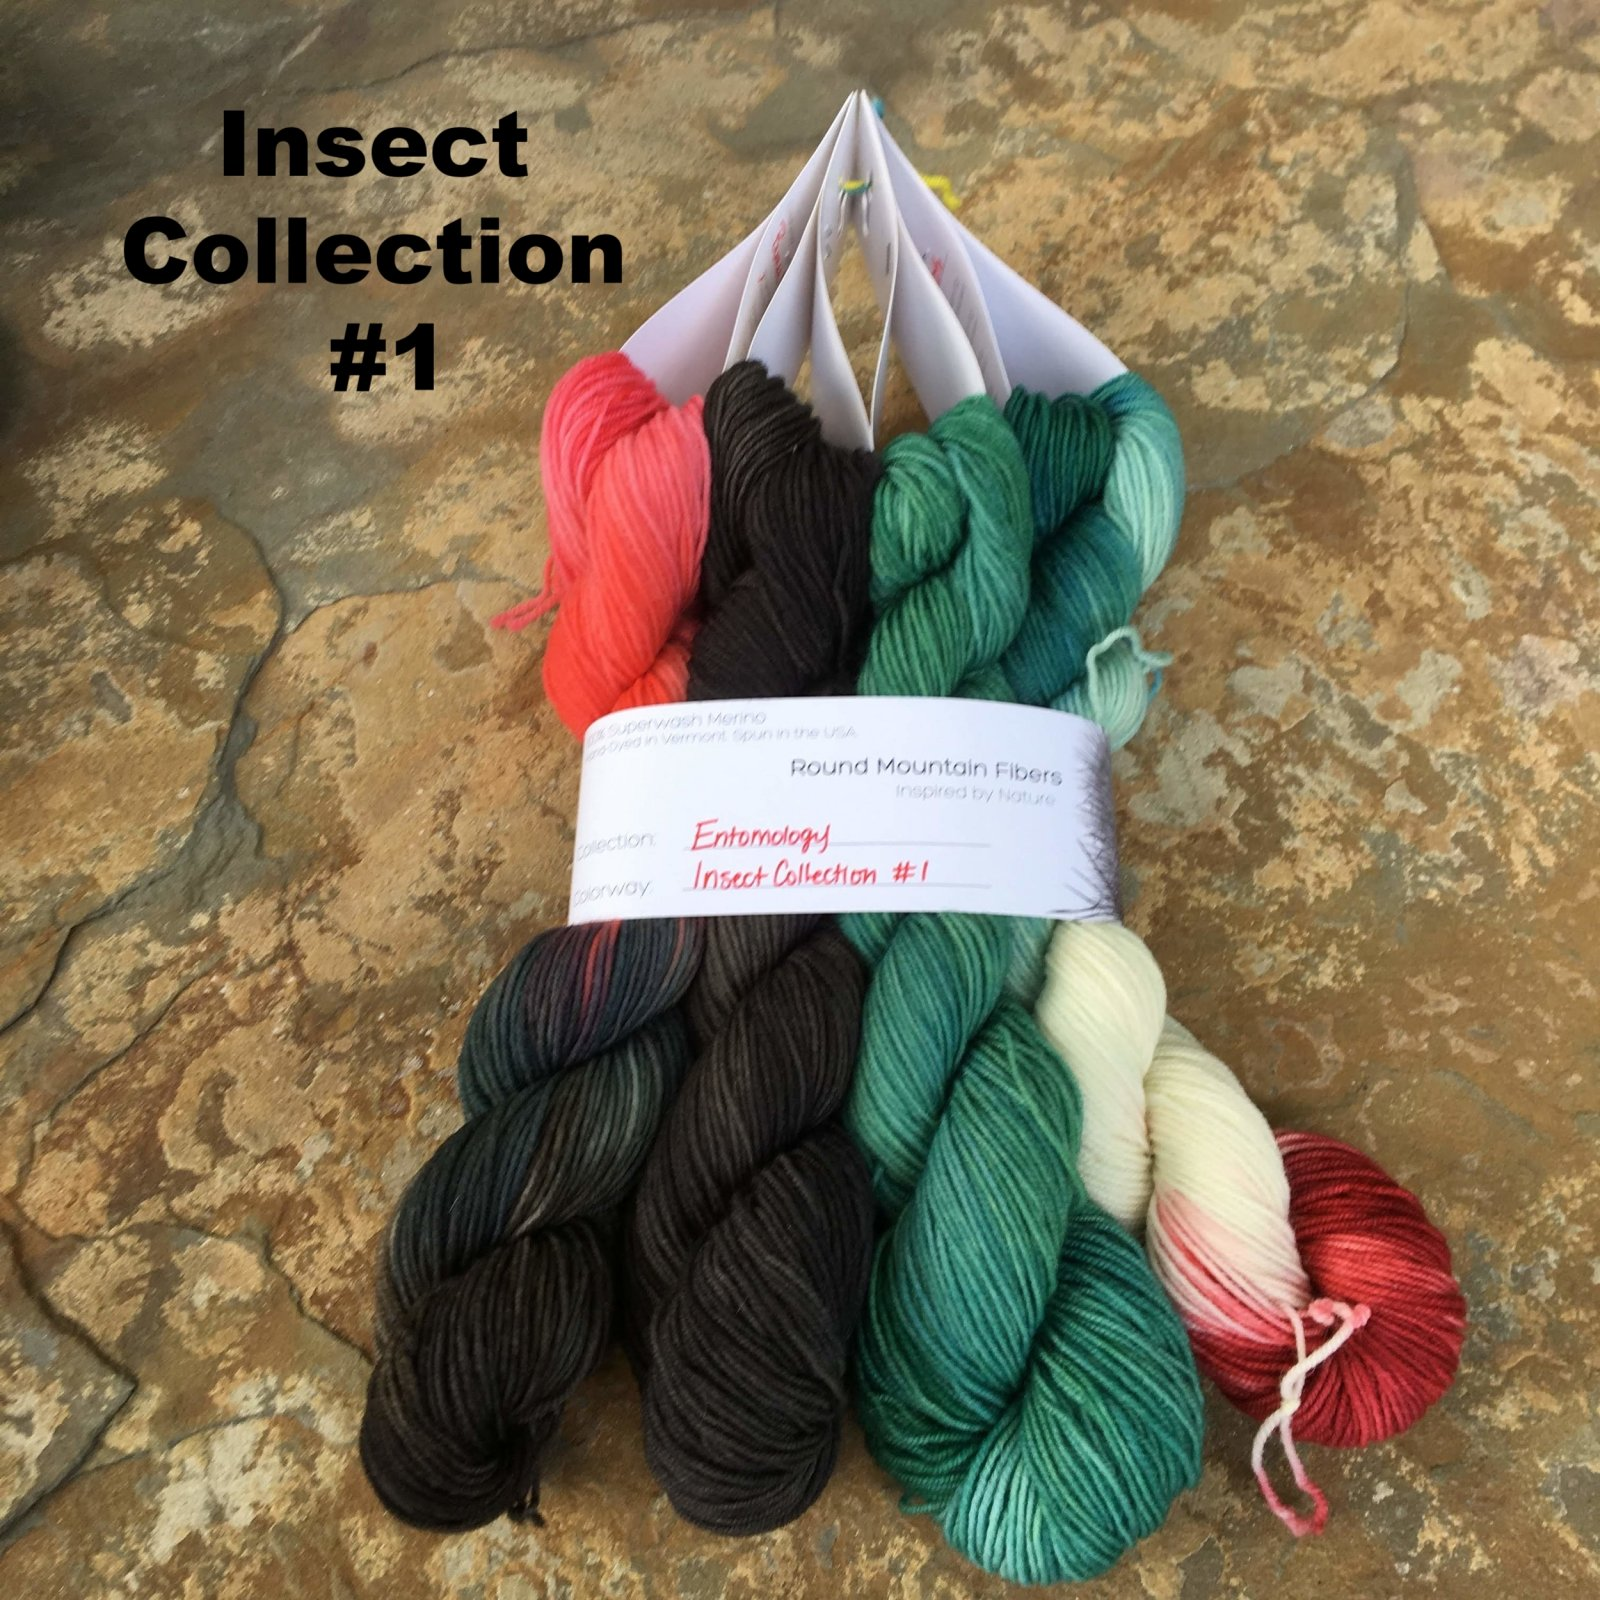 Entomology Insect Collection (Round Mountain Fibers)